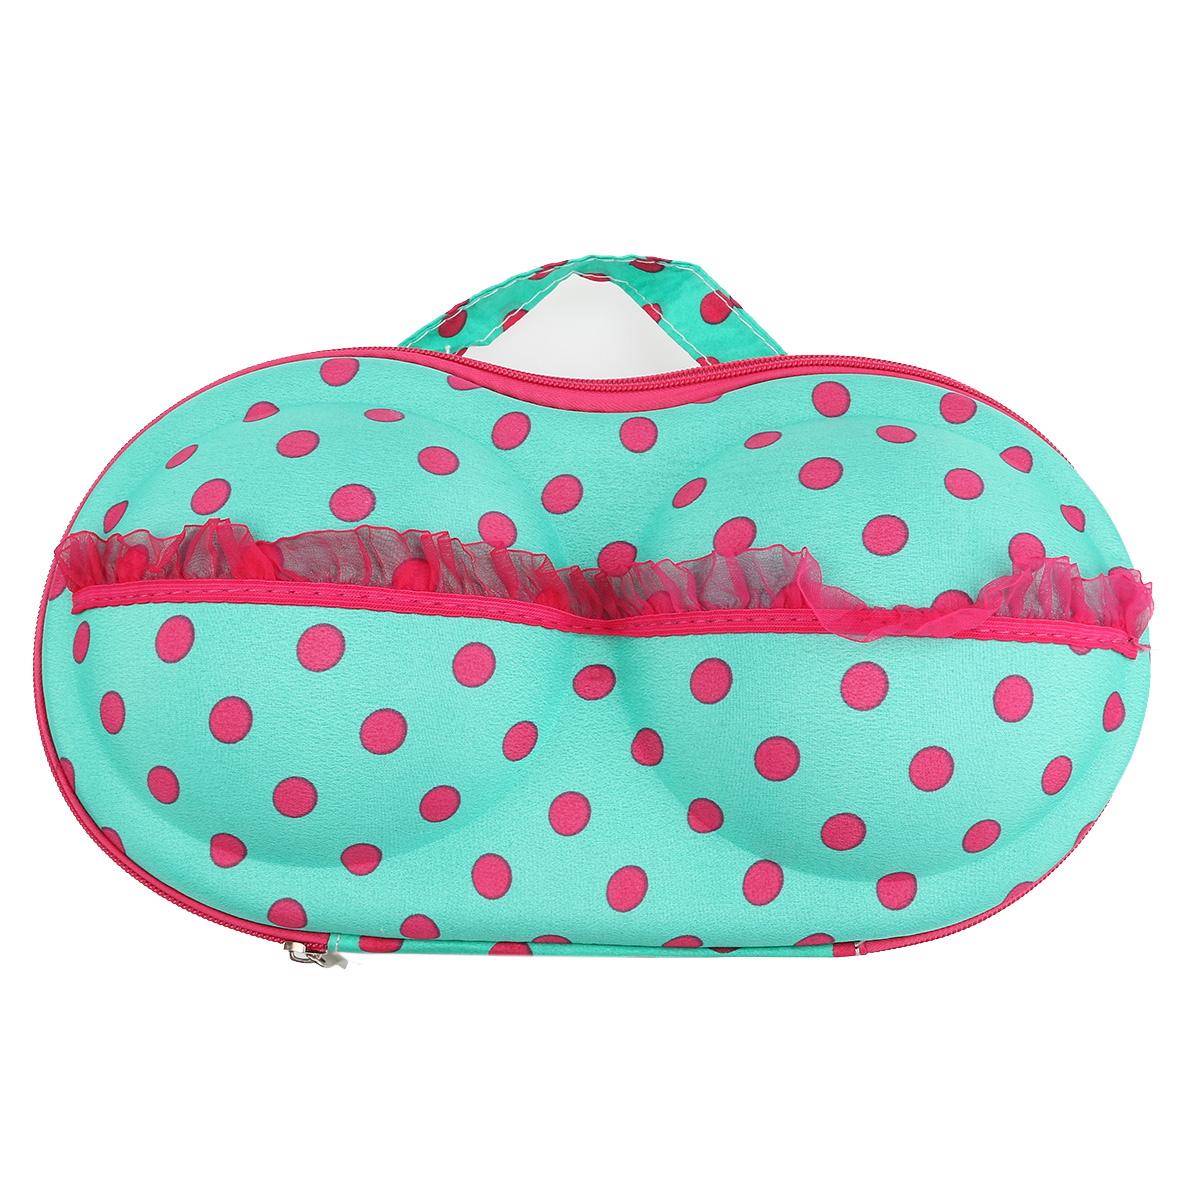 Portable Dotted Decored Case Bag Cosmetic Makeup Toiletry Wash Storage Case Bra Bag Underwear Lingerie Bra Organizer(China (Mainland))